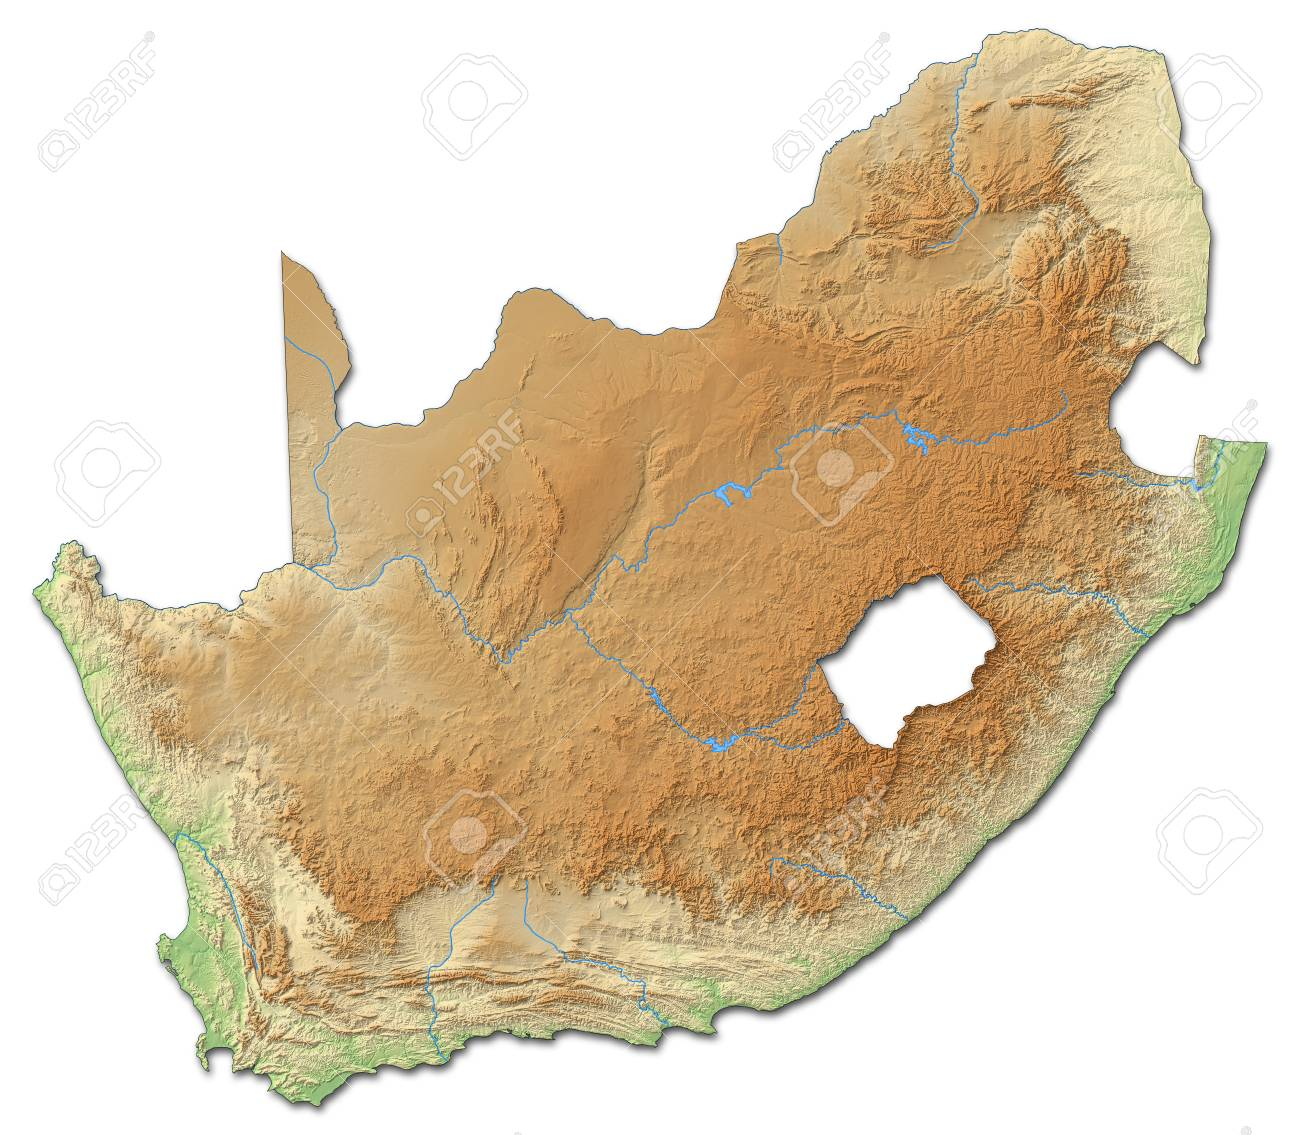 Relief Map Of Southern Africa.Relief Map Of South Africa With Shaded Relief